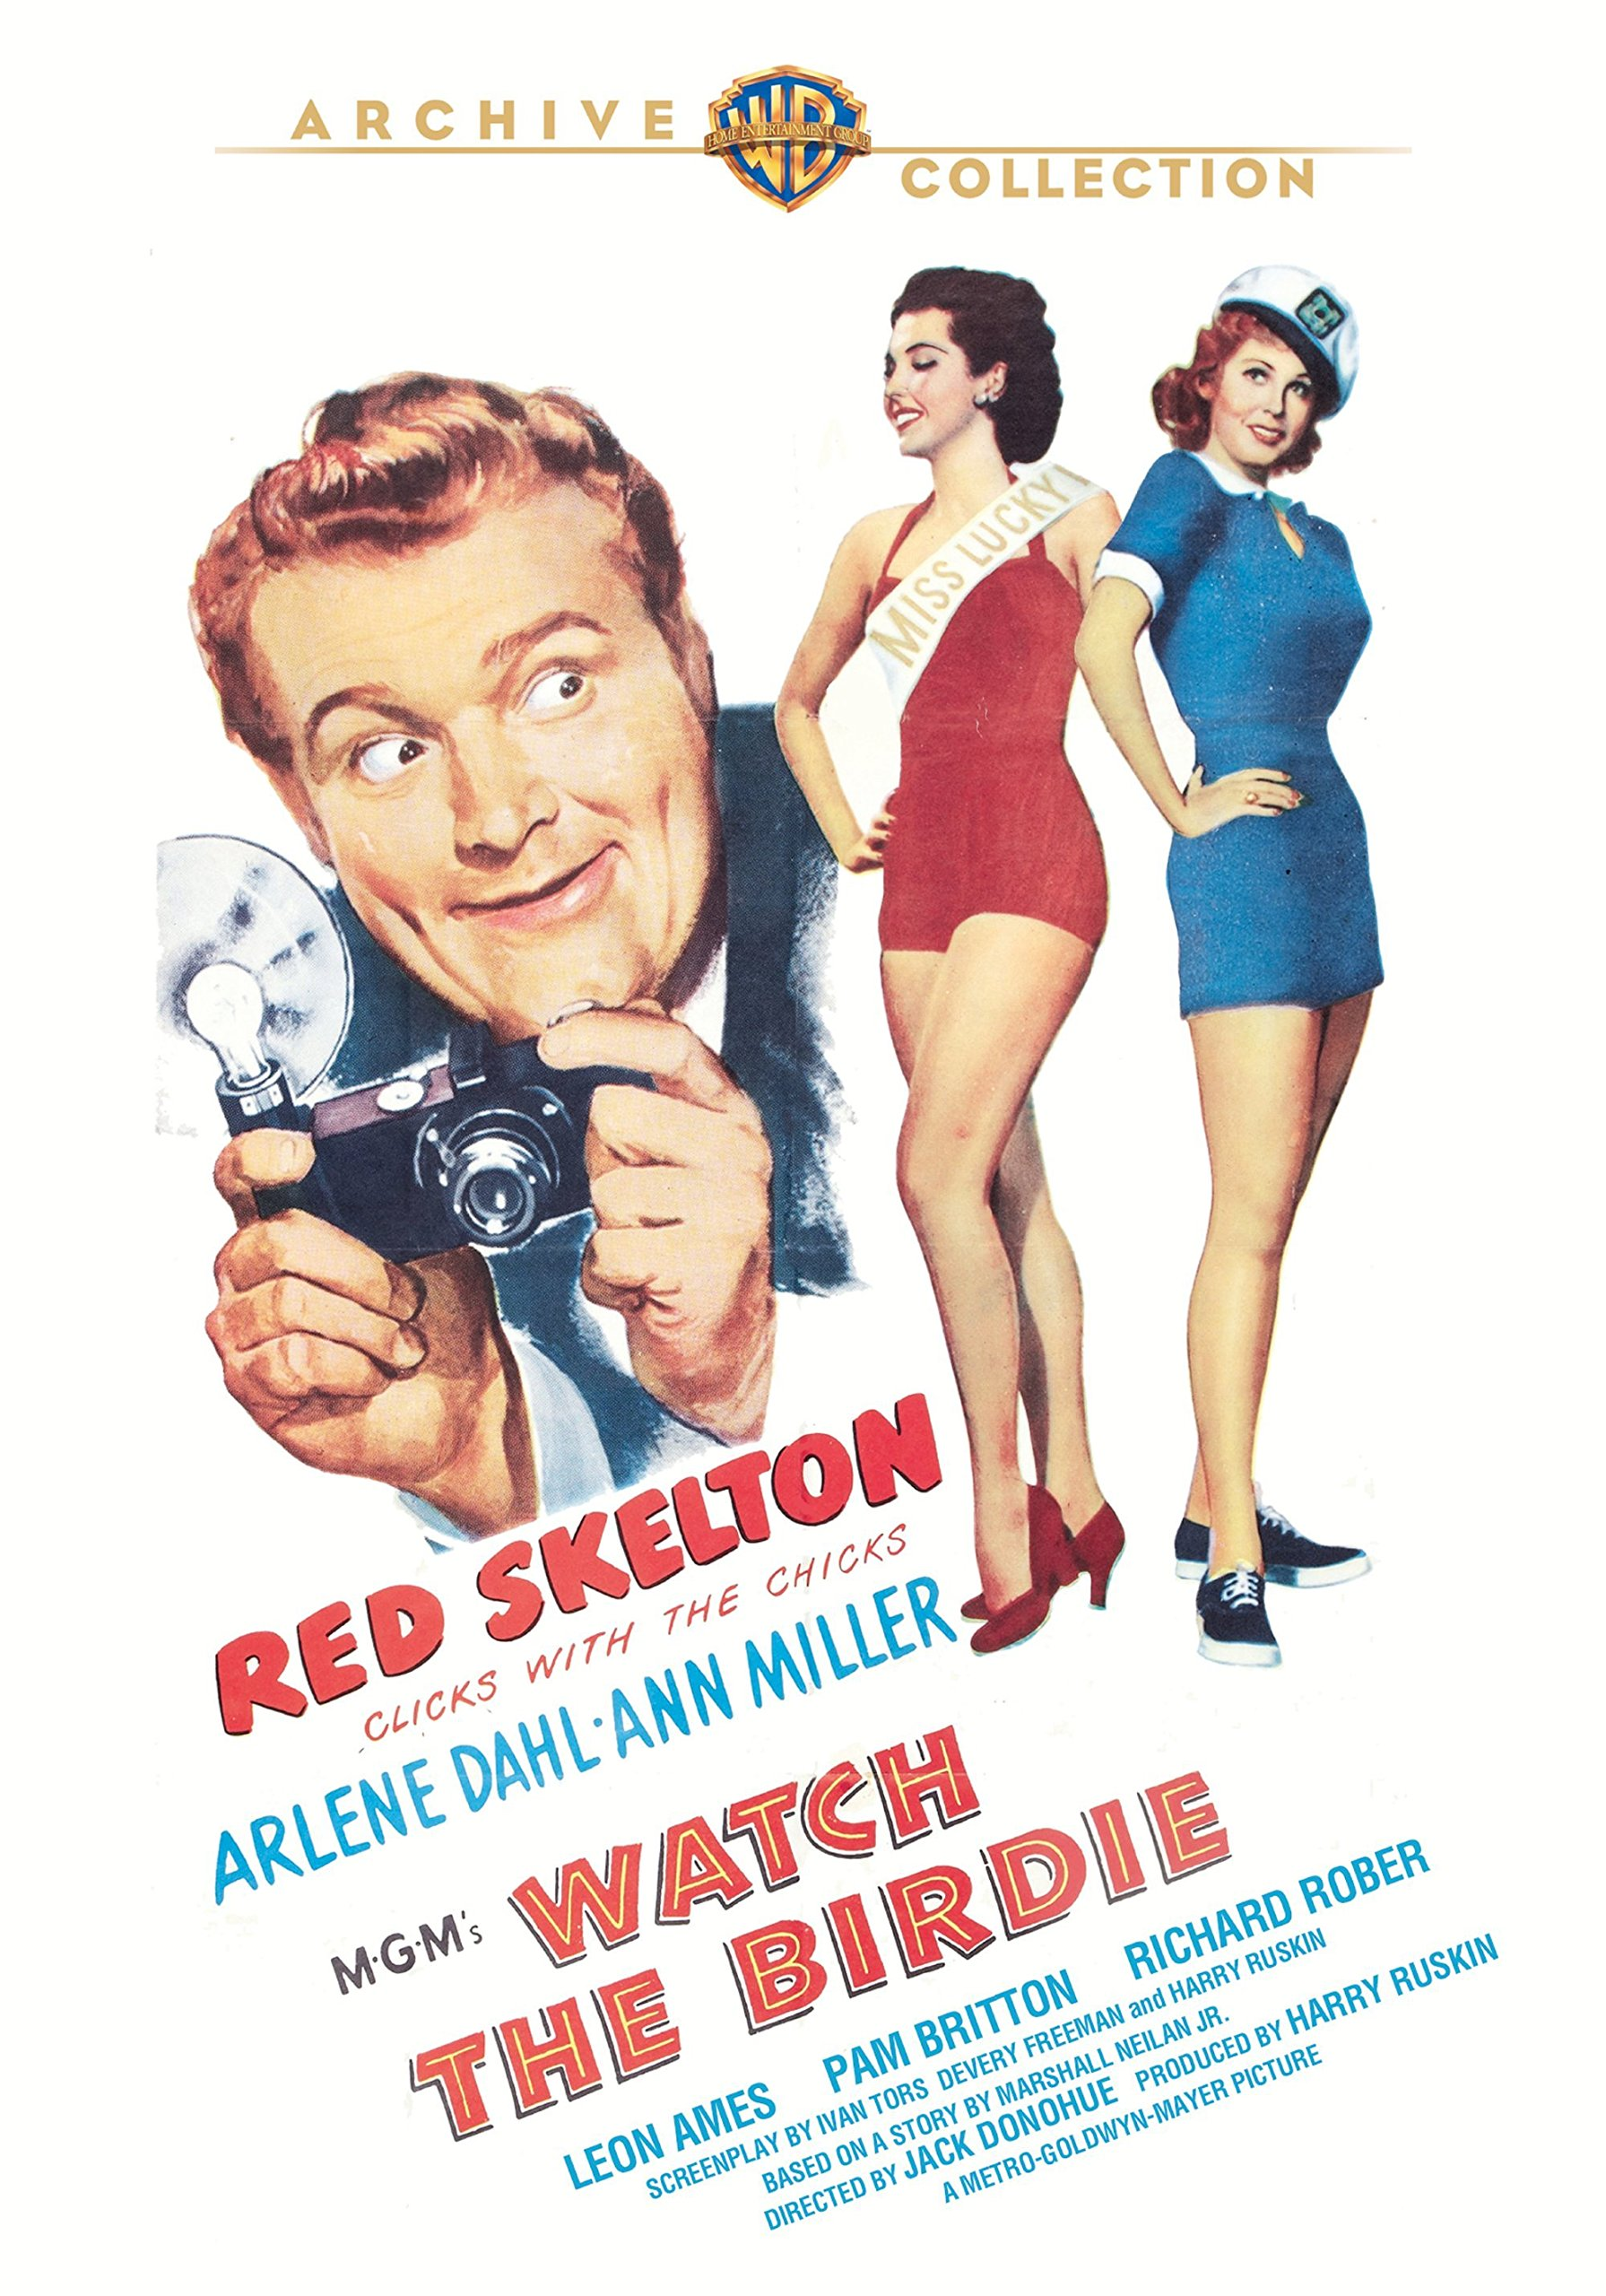 Watch the Birdie (1950) starring Red Skelton, Arlene Dahl, Ann Miller